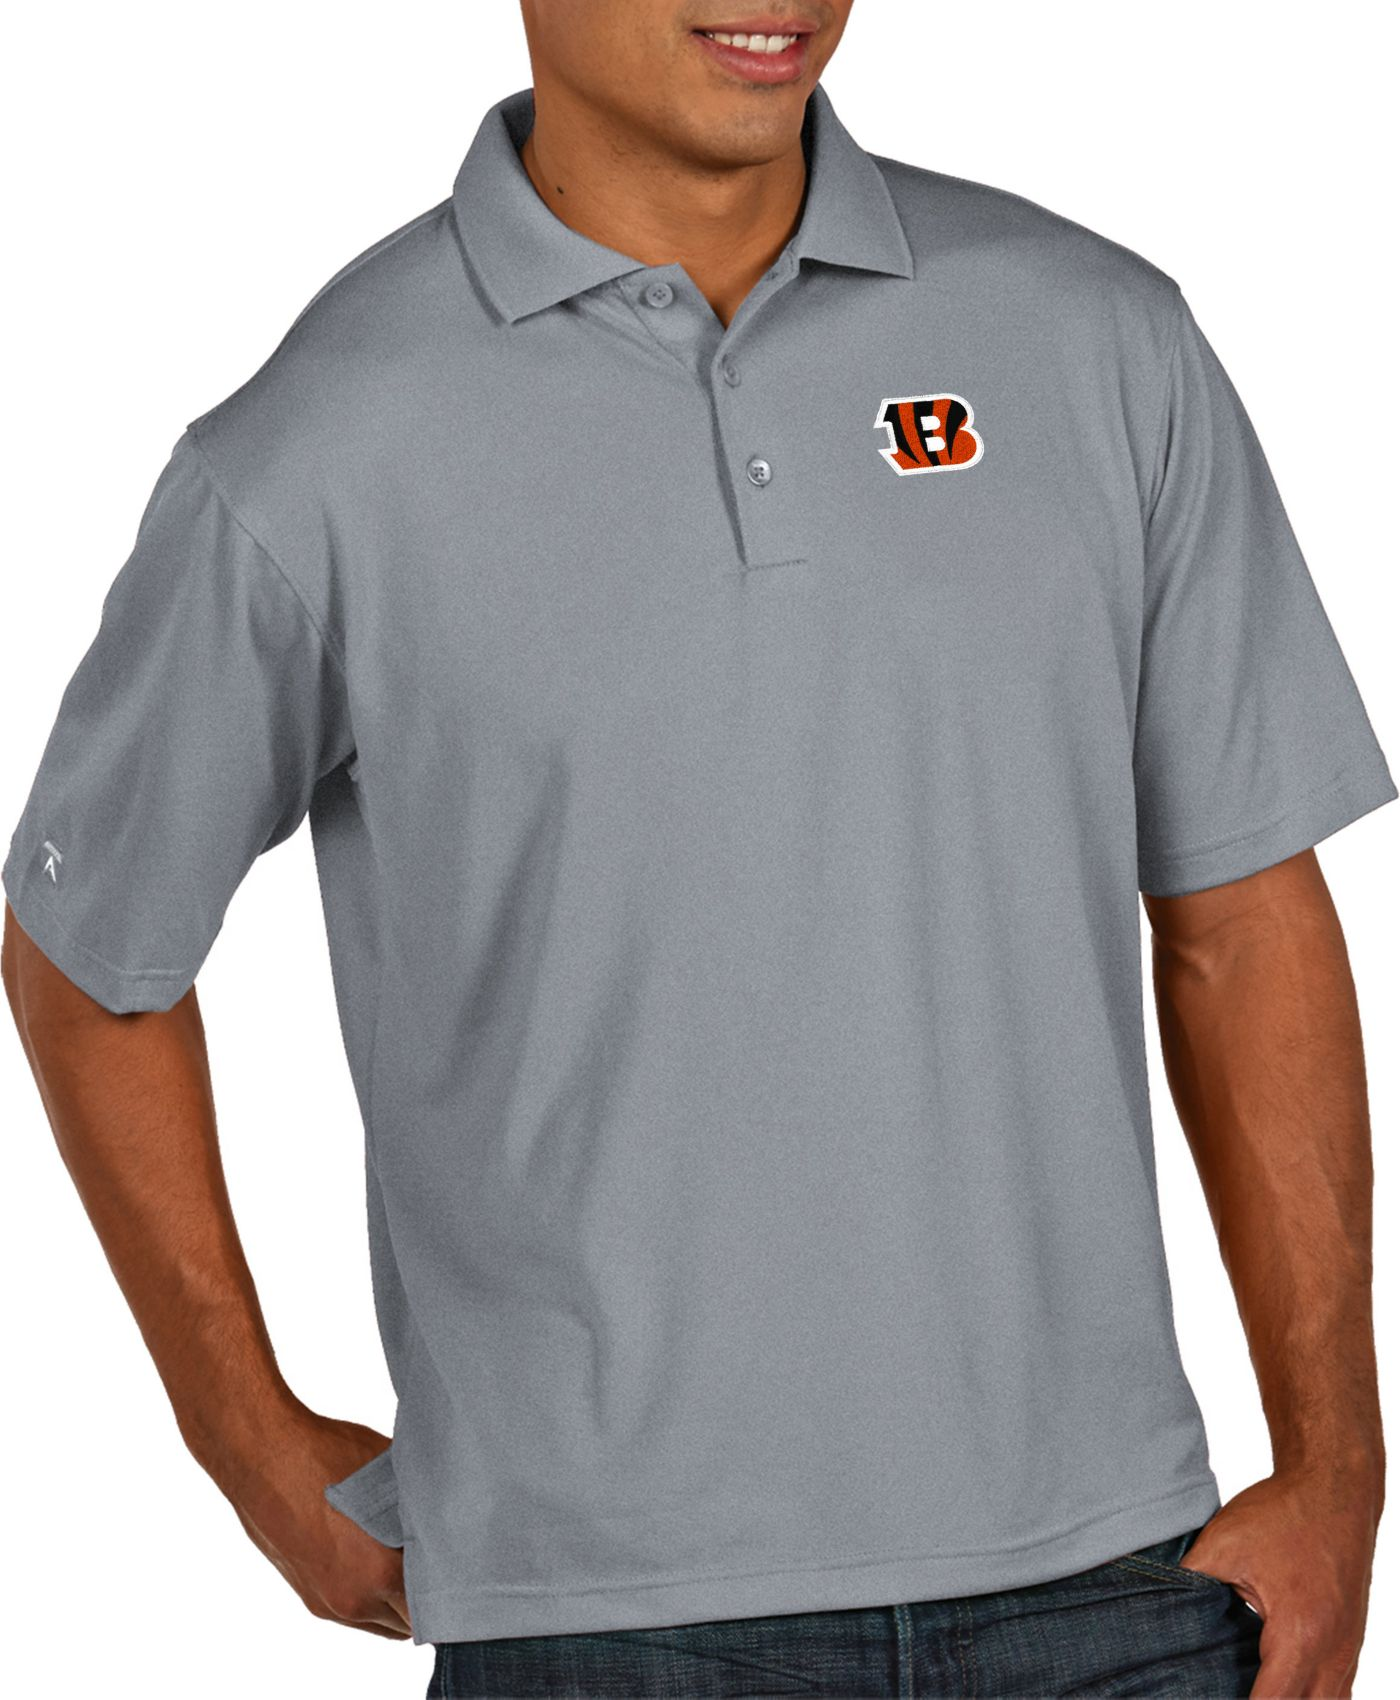 Antigua Men's Cincinnati Bengals Pique Xtra-Lite Performance Grey Polo